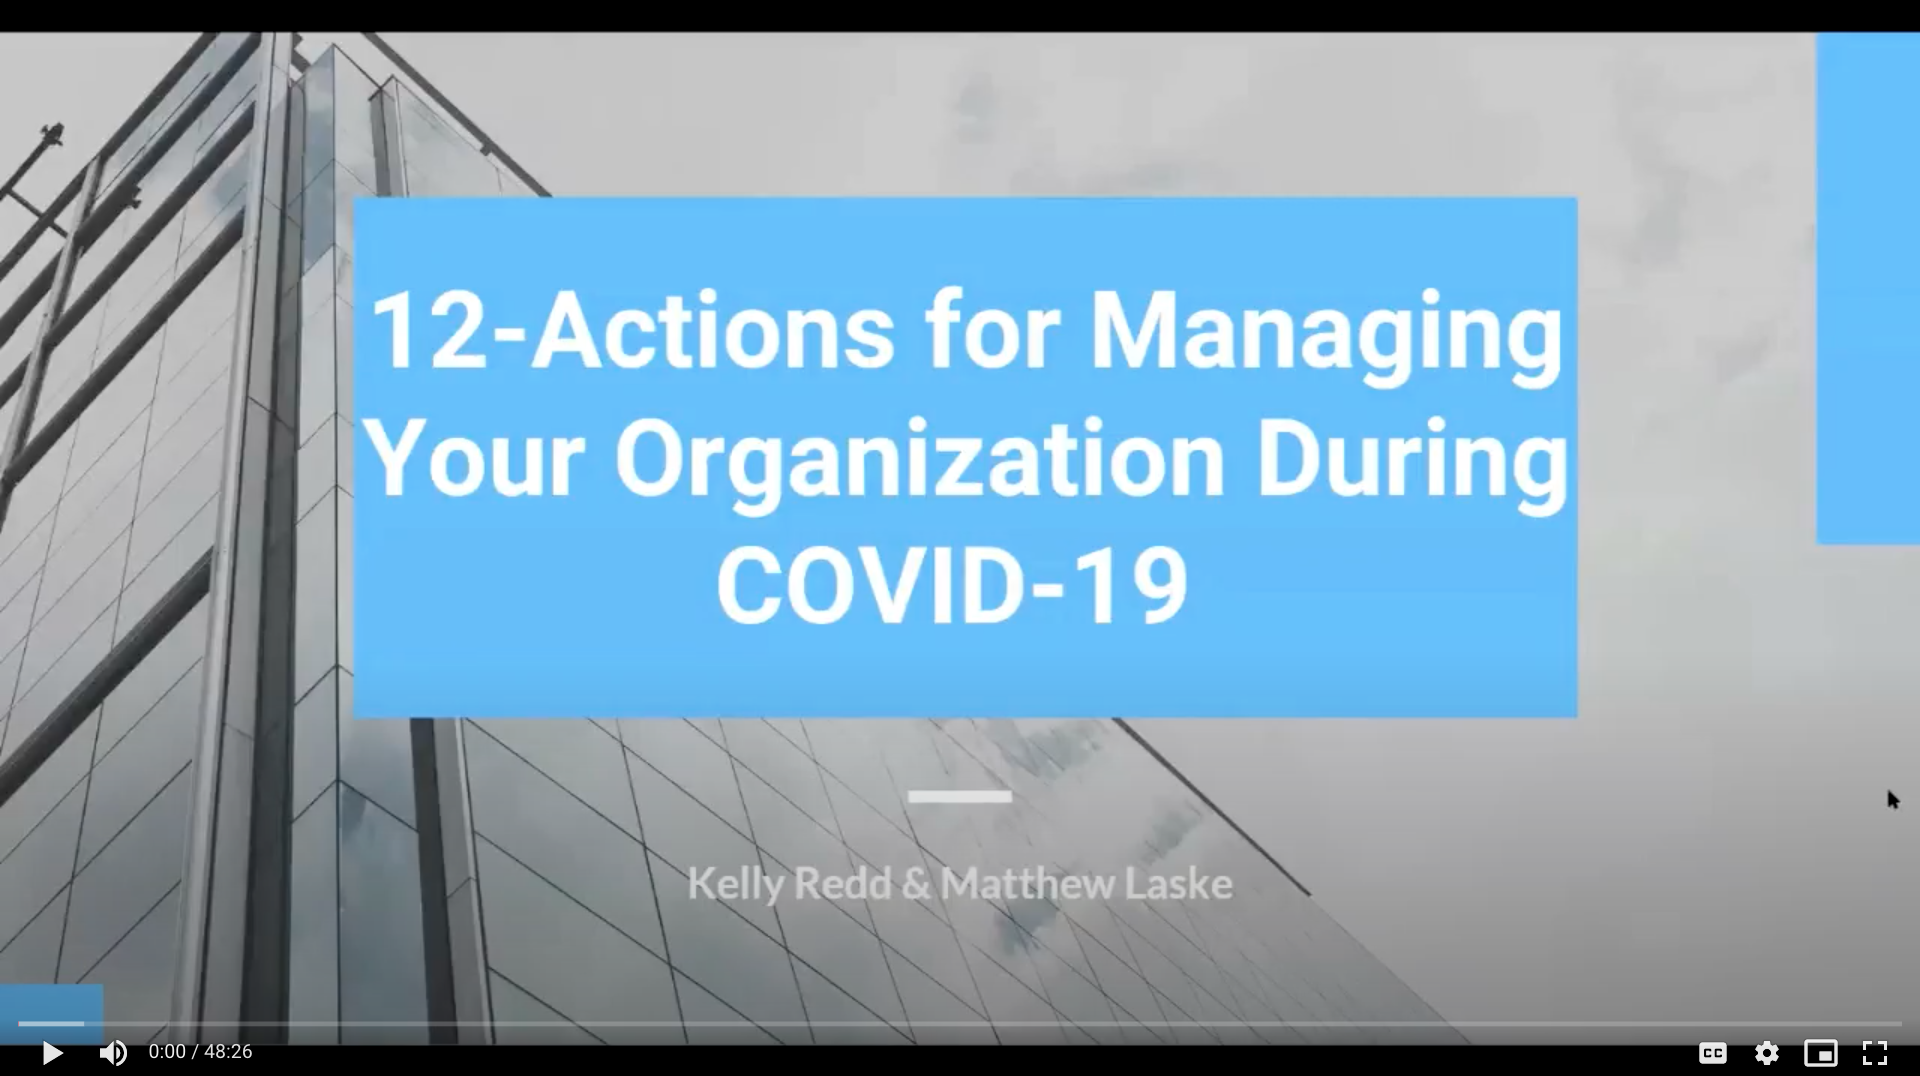 12 Actions for Managing Your Organization During COVID-19